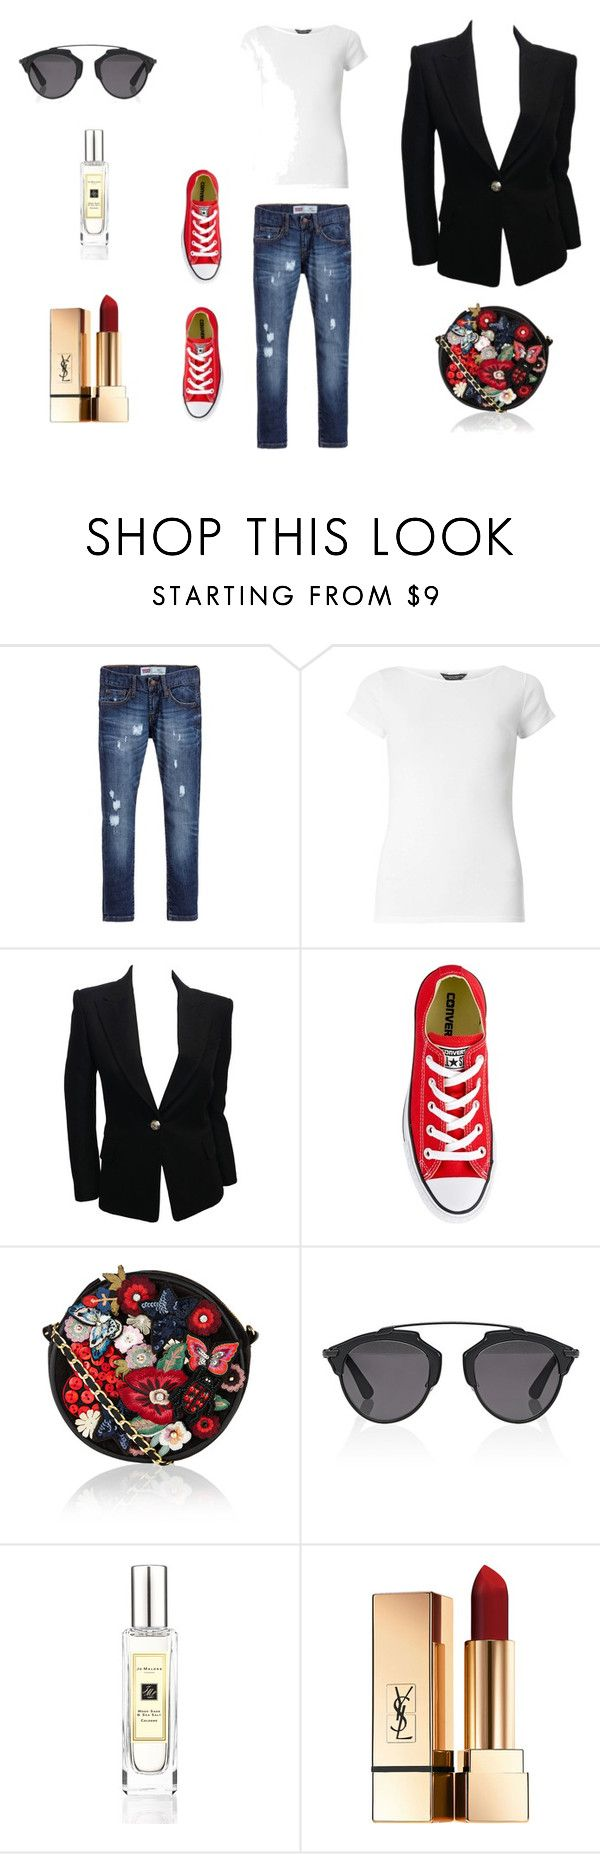 """free as a bird"" by janka-dzurillova on Polyvore featuring Levi's, Dorothy Perkins, Balmain, Converse, Accessorize, Christian Dior and Jo Malone"